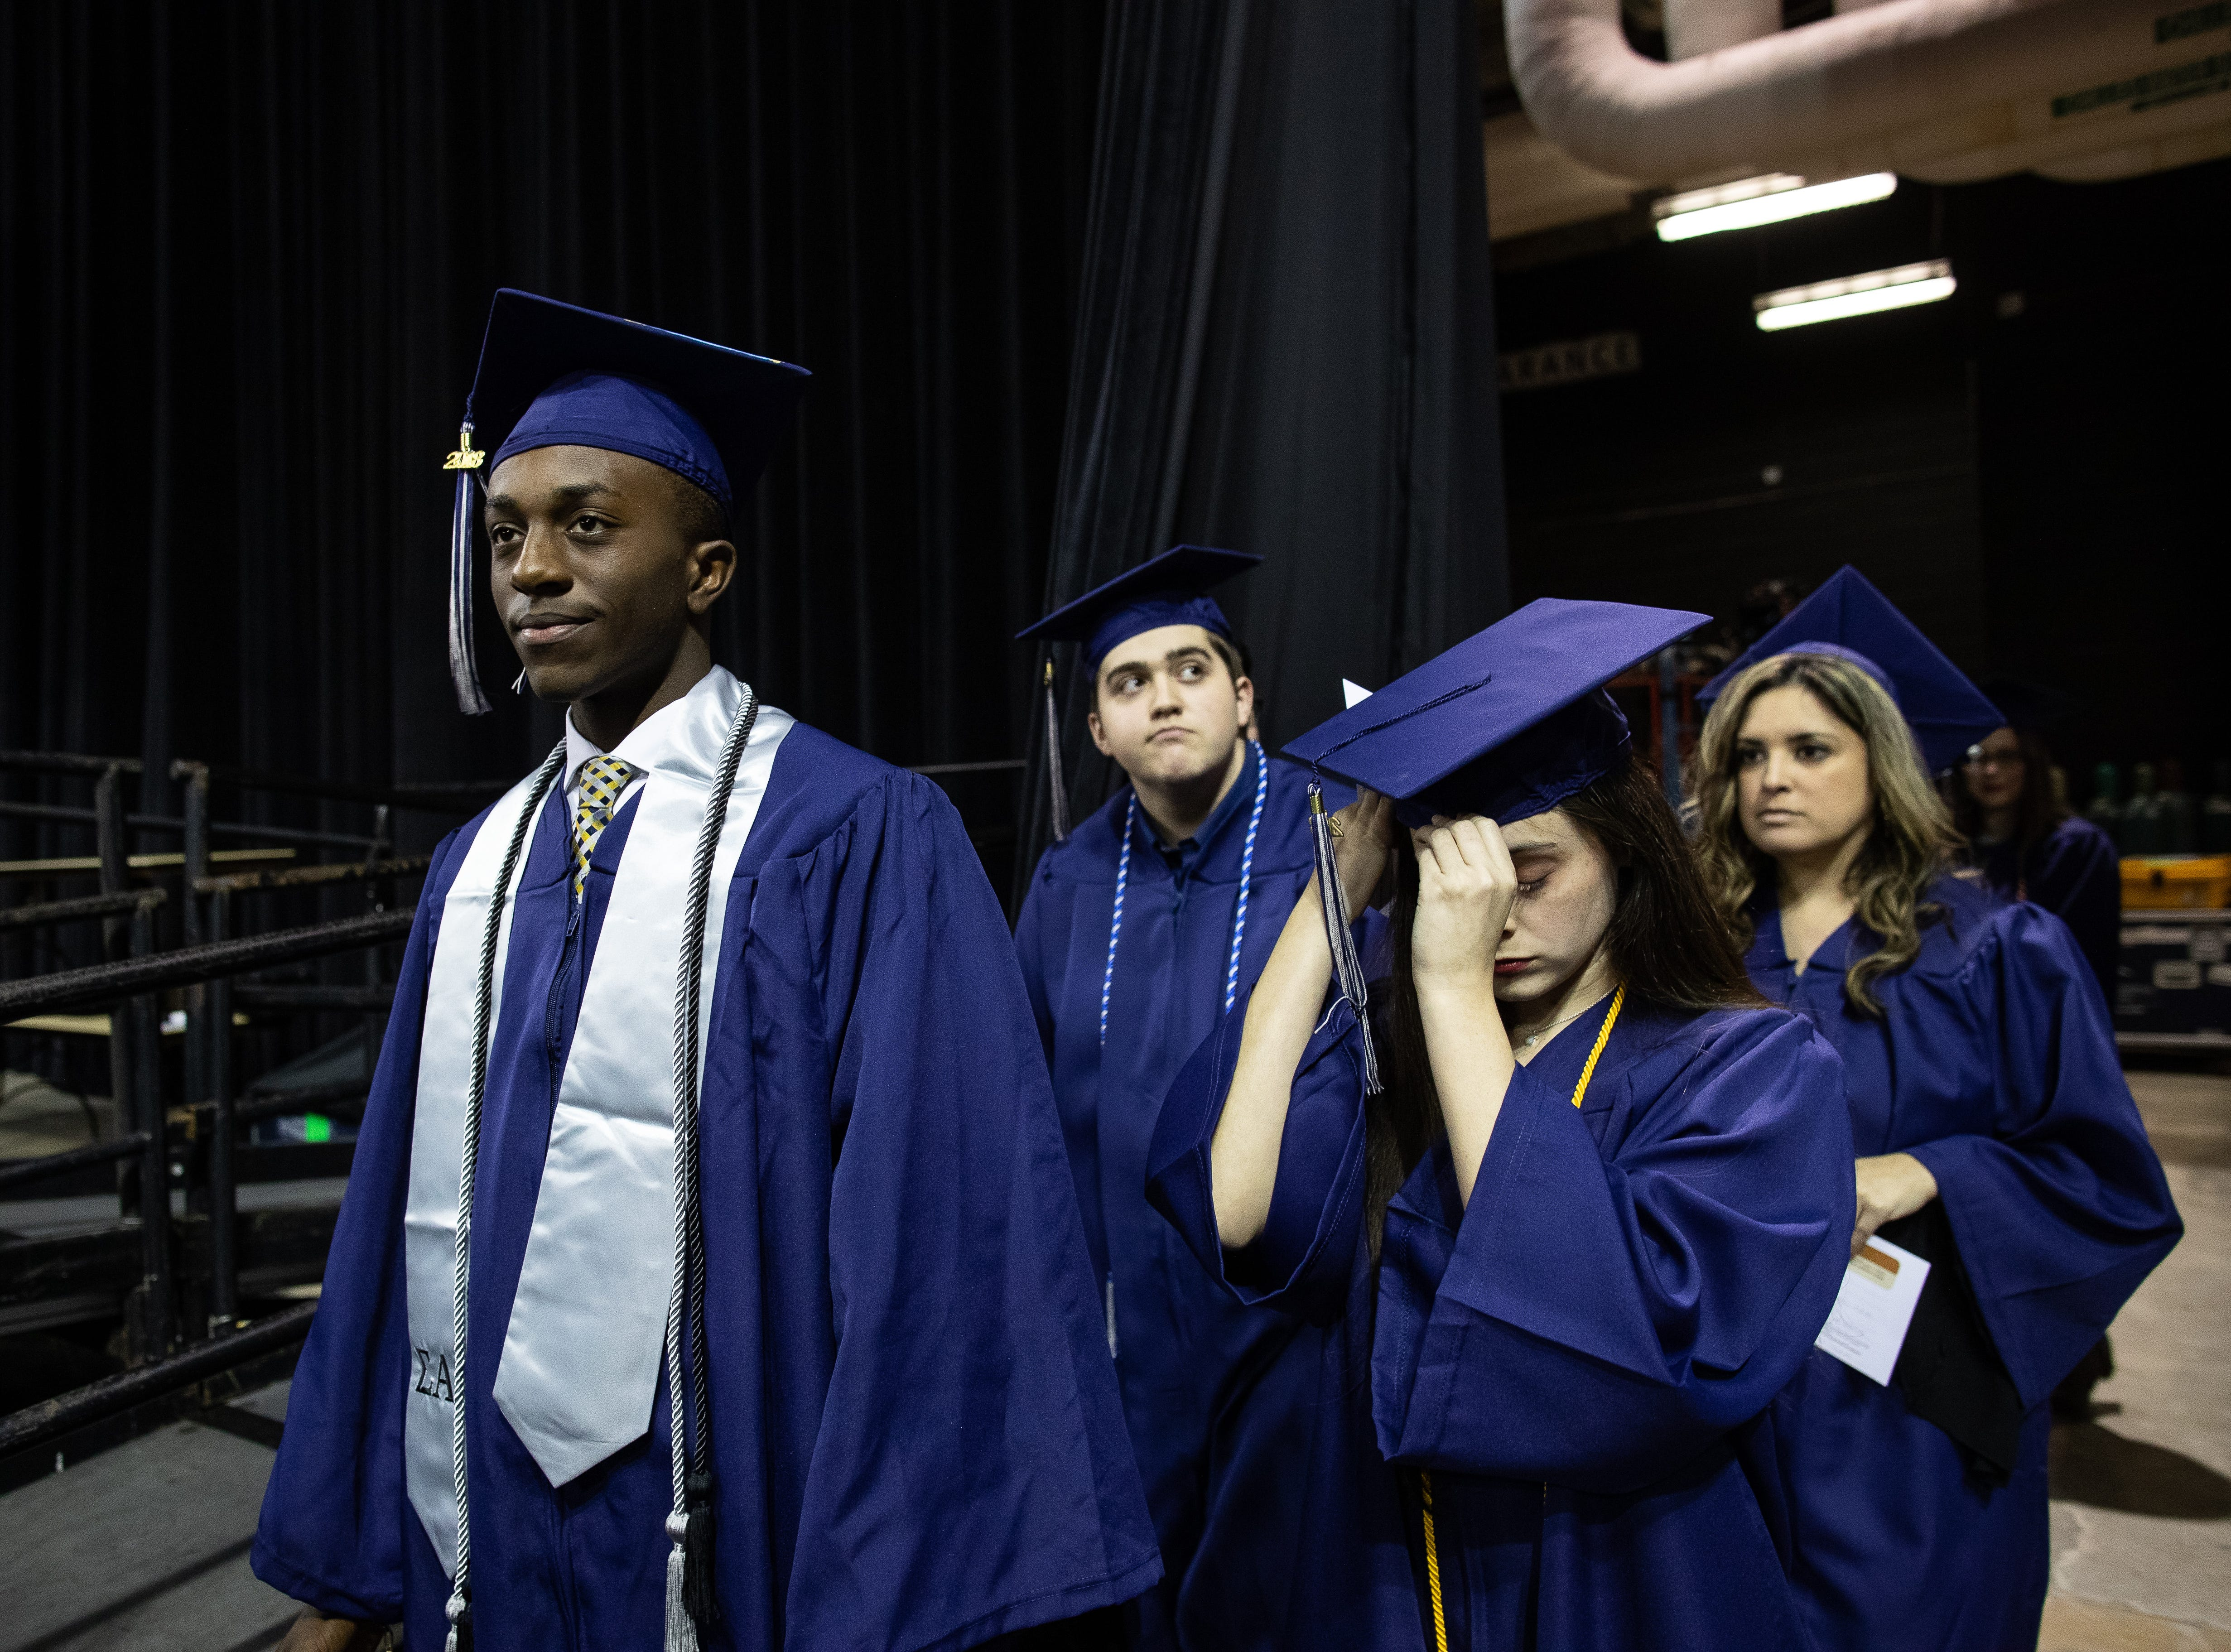 Flour Bluff's High School's Jeremiah Baldwin's and Robstown High School 's AJ Barrera during the  of Del Mar's fall commencement ceremony on Thursday, Dec. 13, 2018.